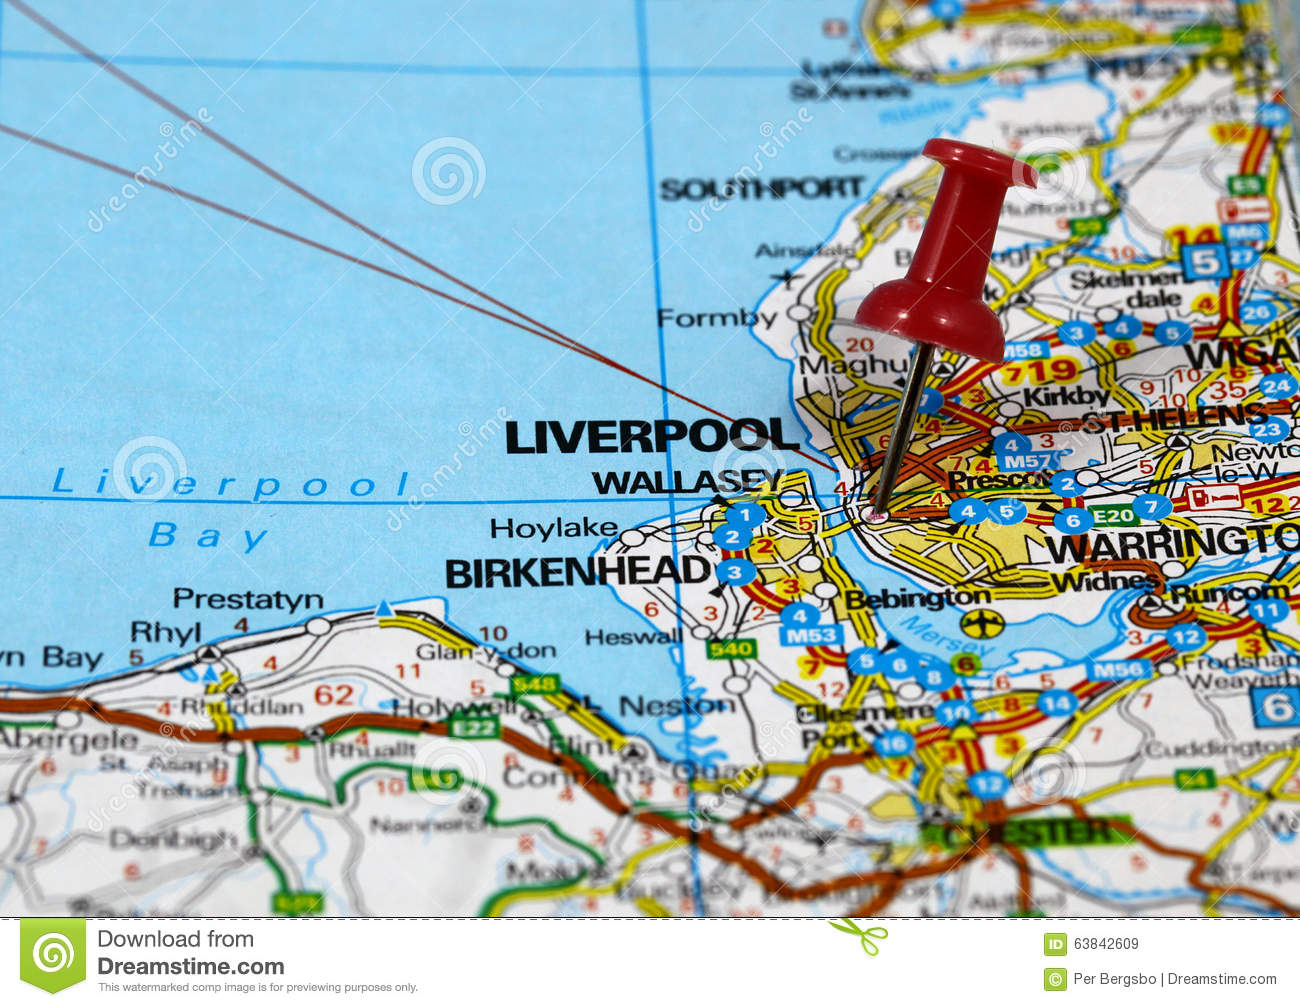 Carte Angleterre Avec Liverpool.Liverpool Image Stock Image Du Emplacement Europe Cartes